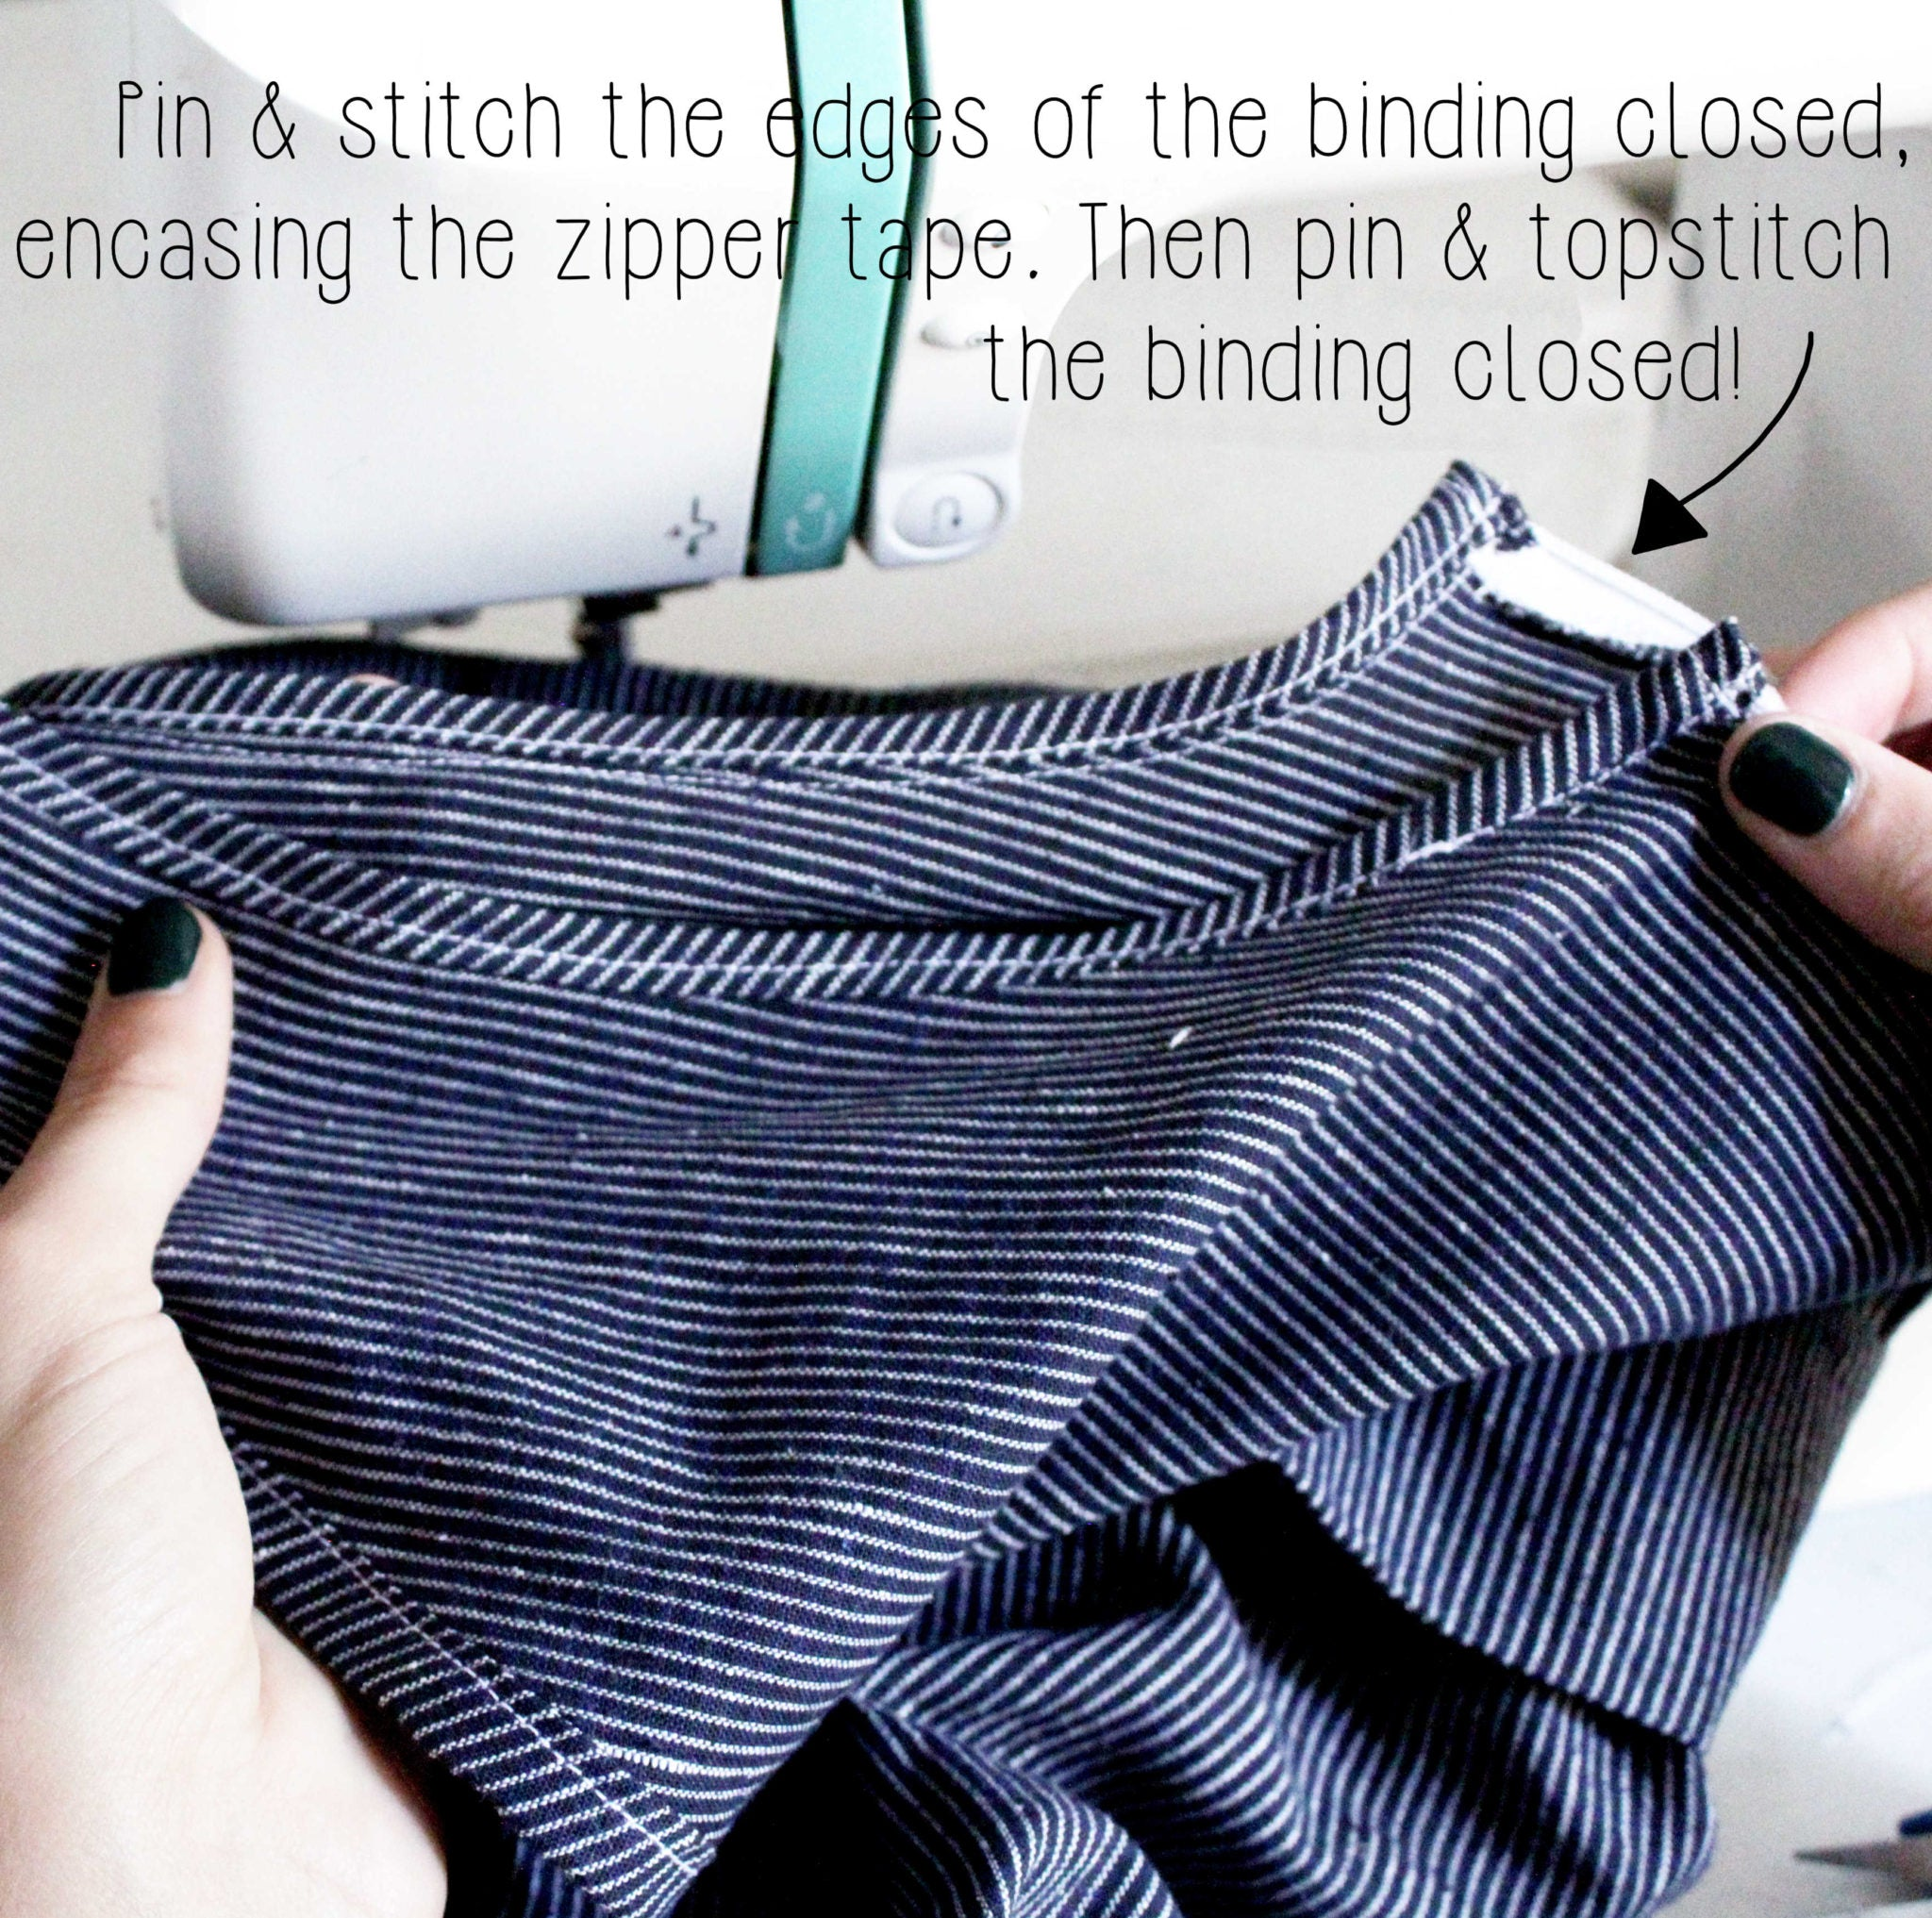 How To Sew An Invisible Zipper Sewing Tutorial: Step 7.1